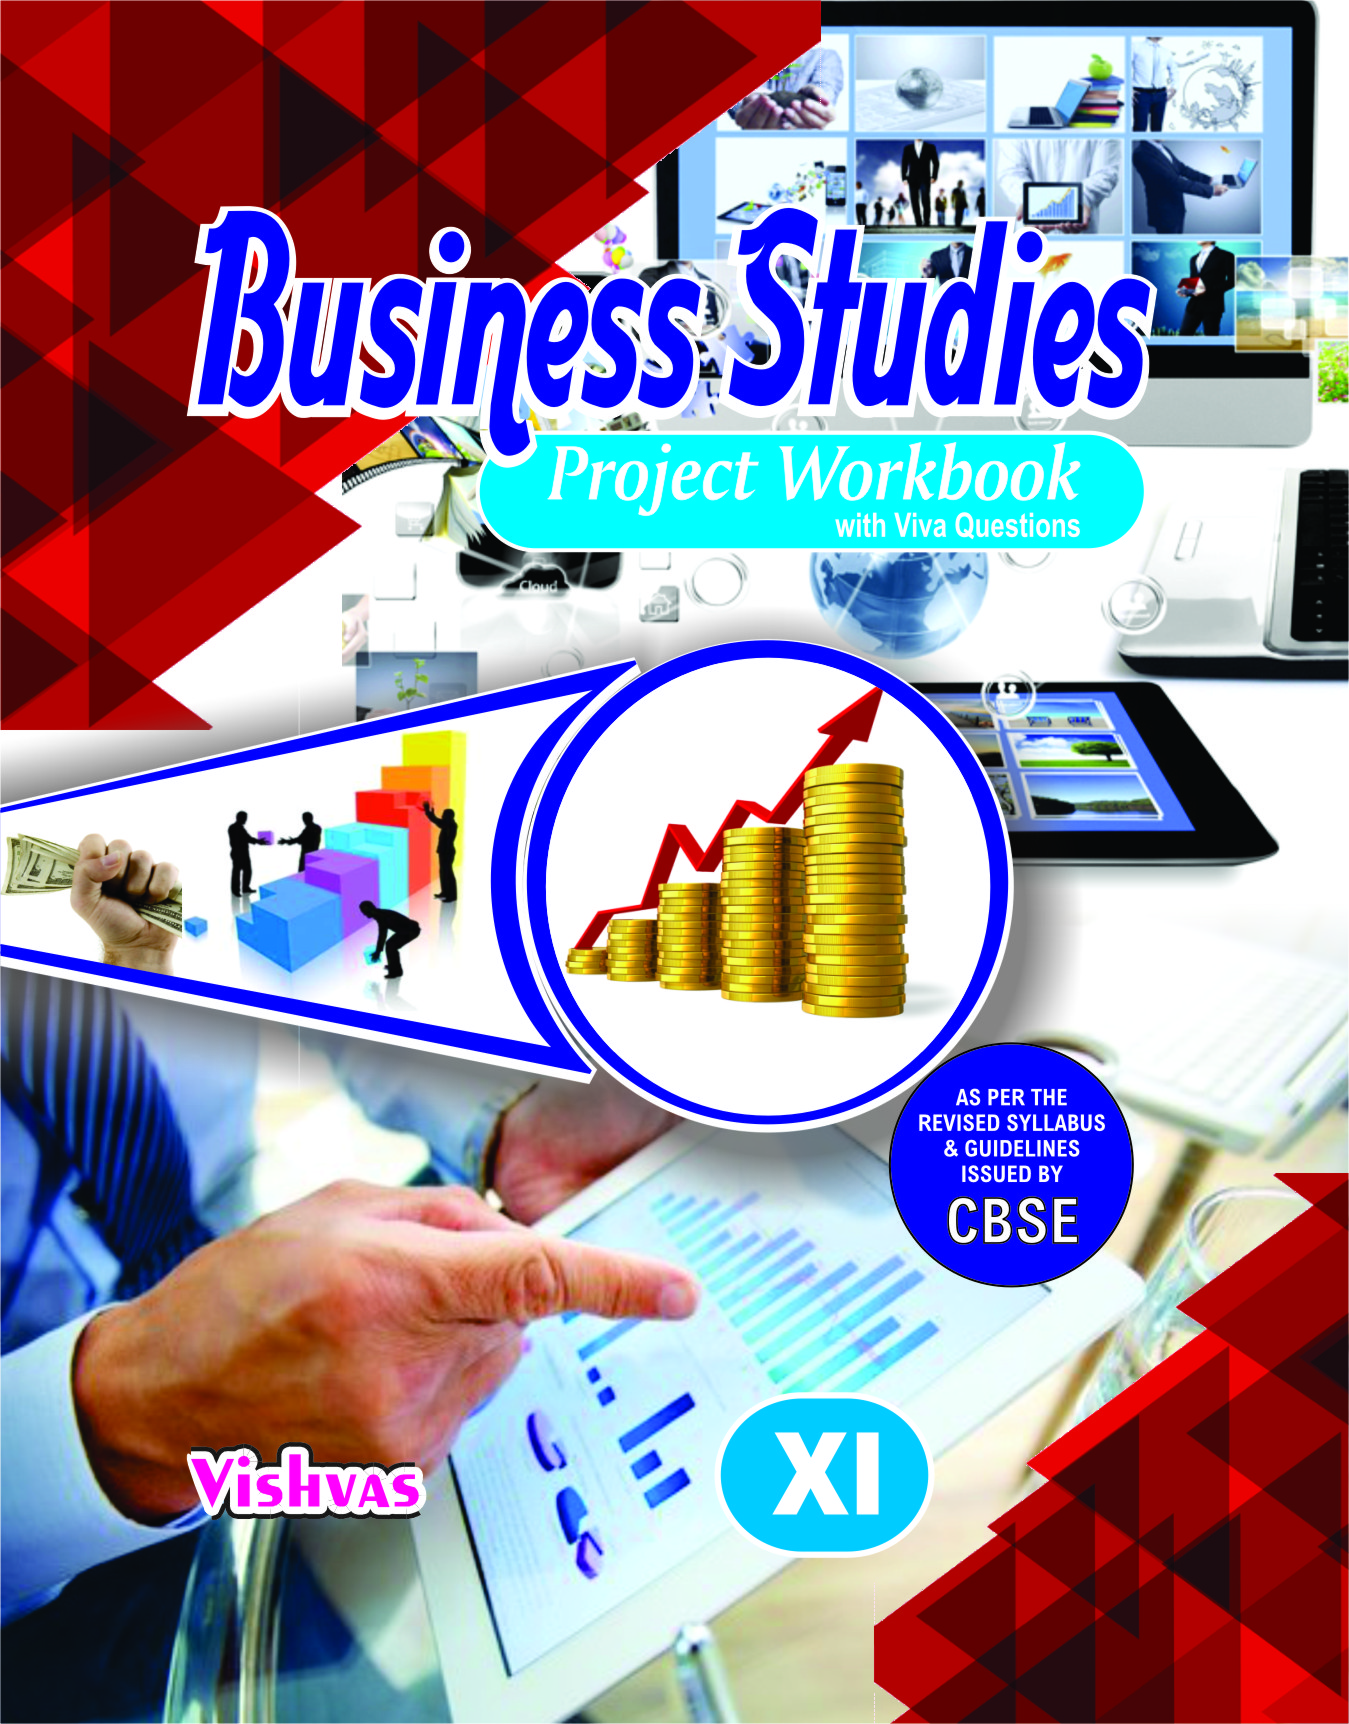 Business plan project for class 12 cbse write my essay website business plan project for class 12 cbse malvernweather Choice Image